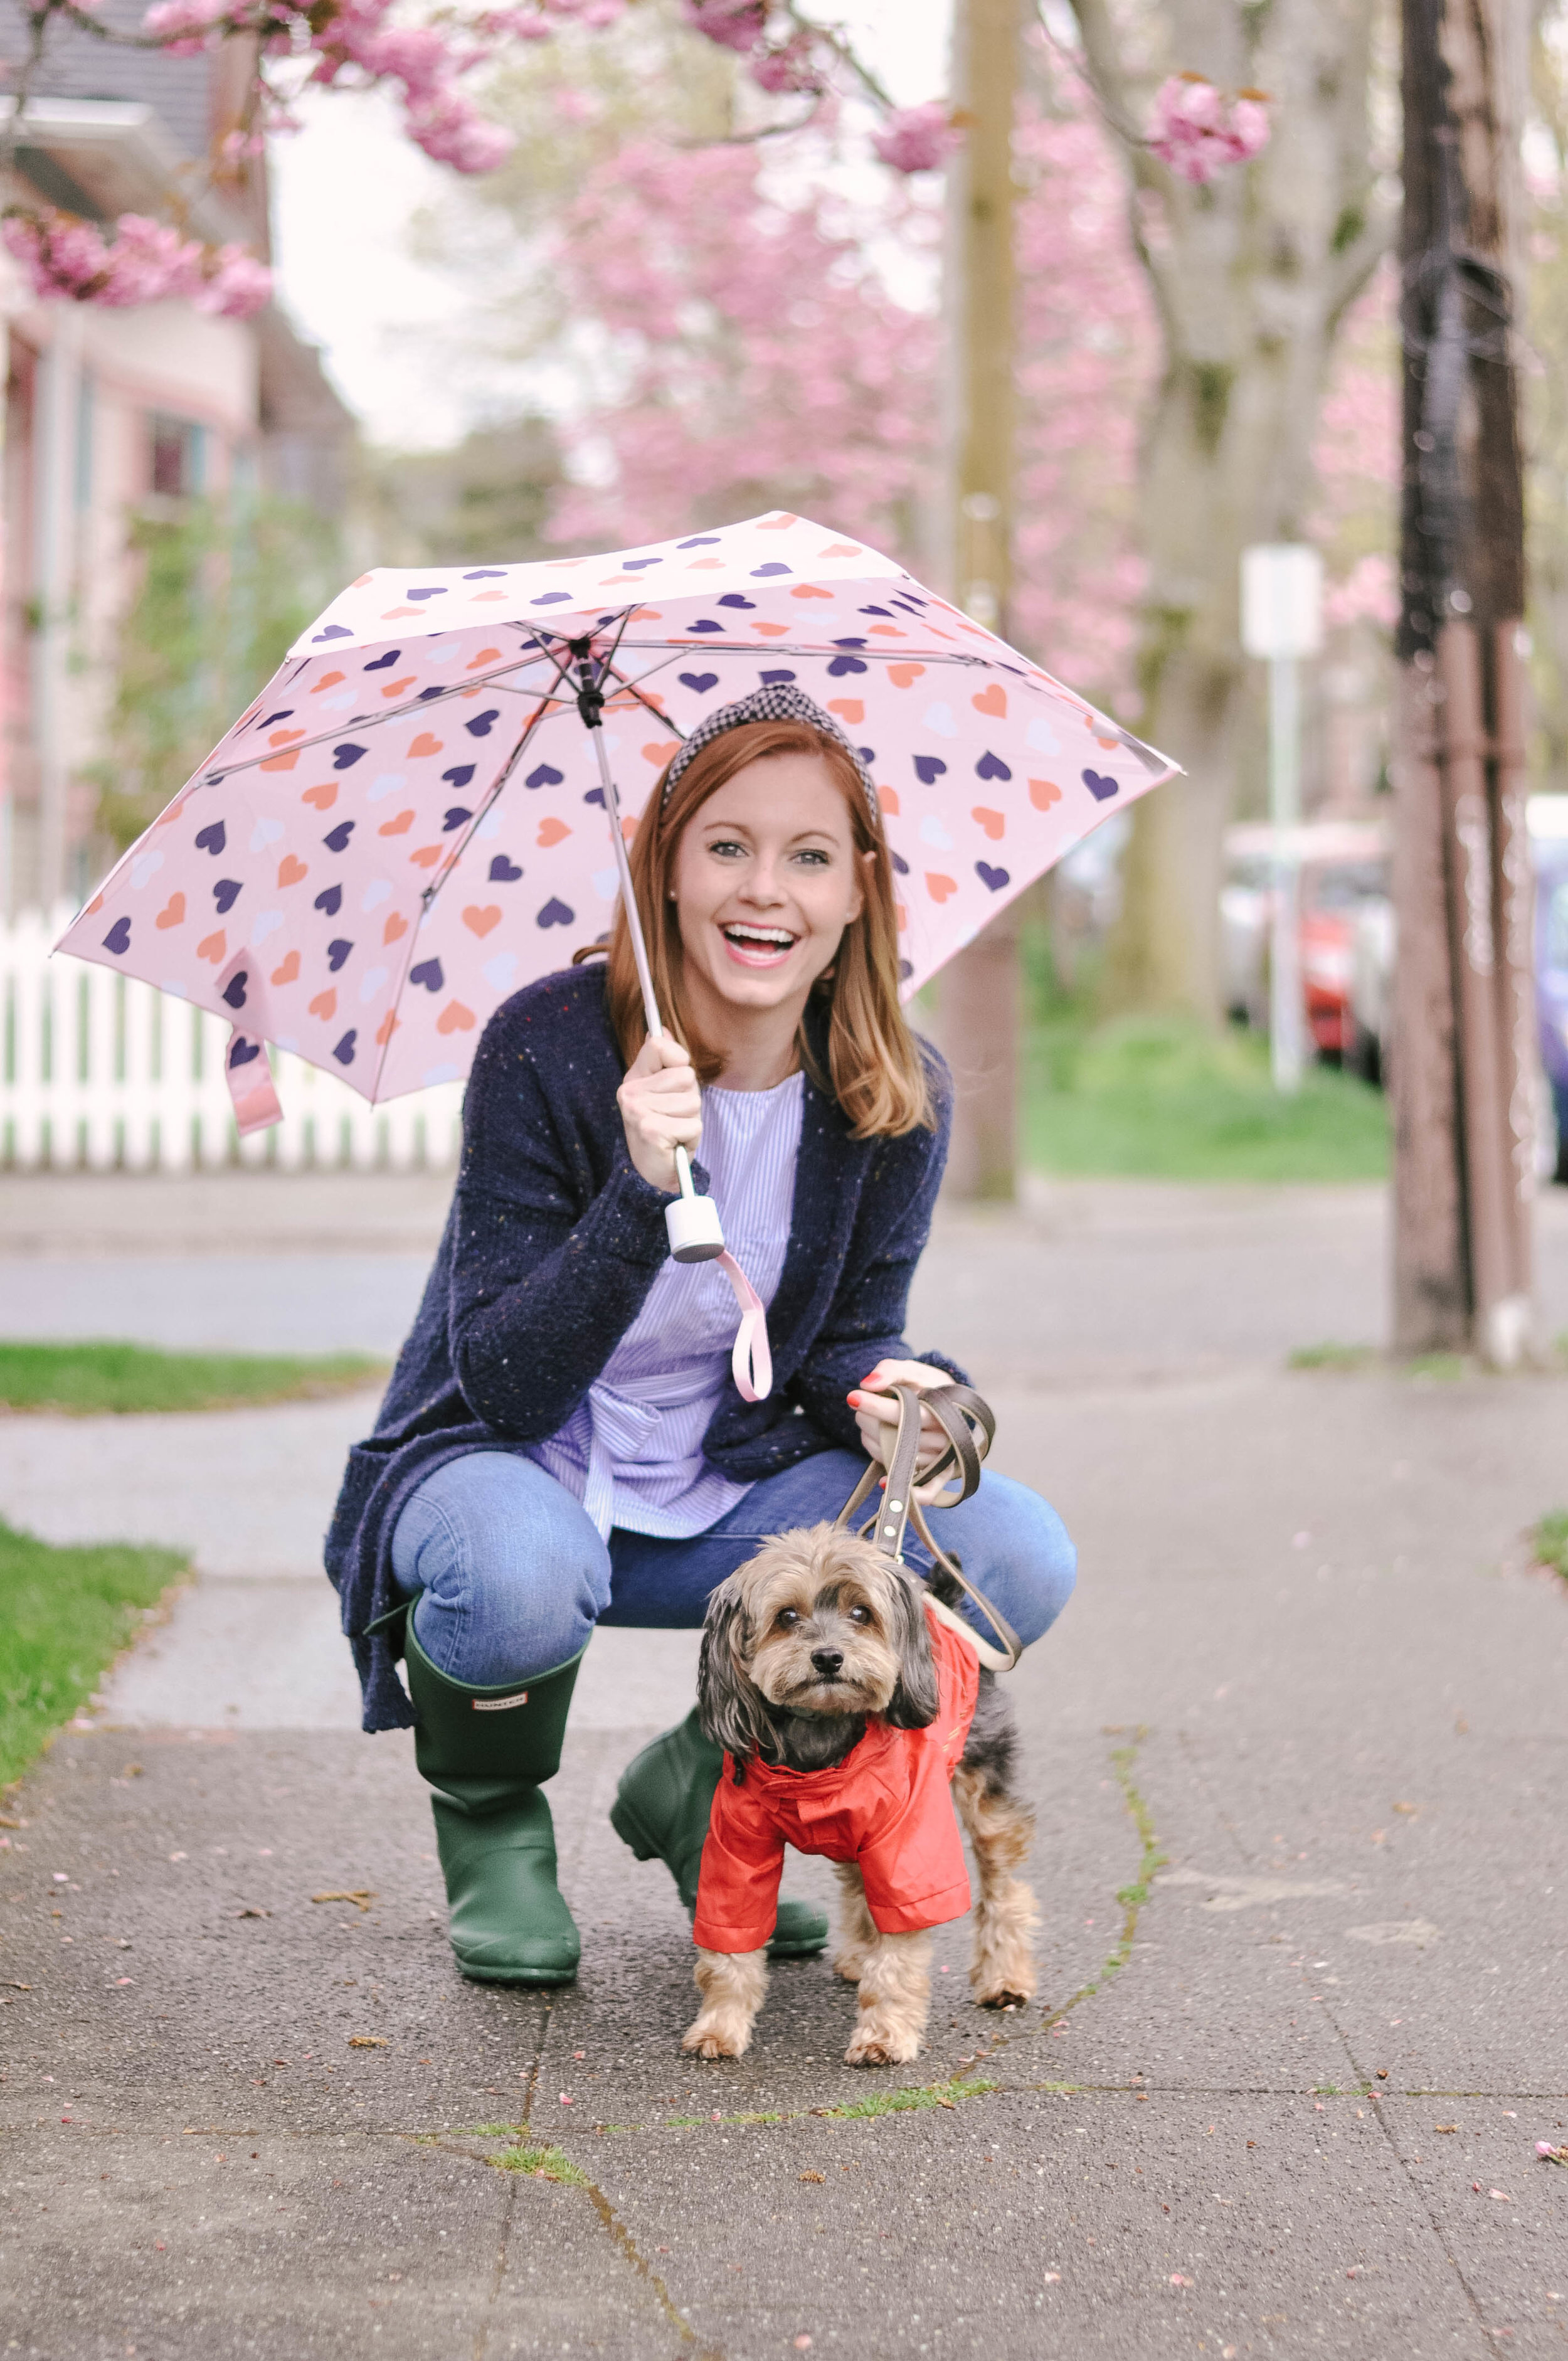 Woman posing with dog in raincoat on rainy day